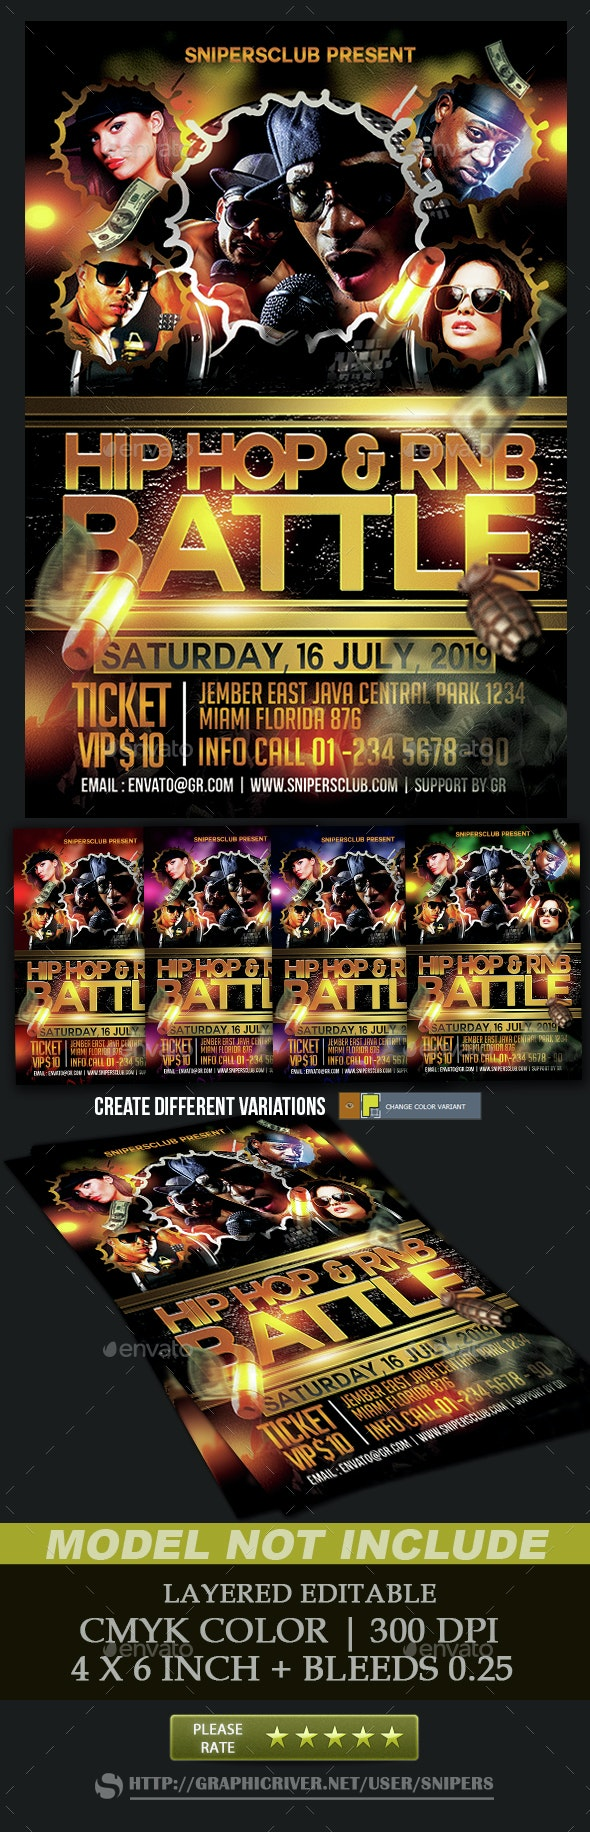 HipHop and Rnb Battle - Events Flyers